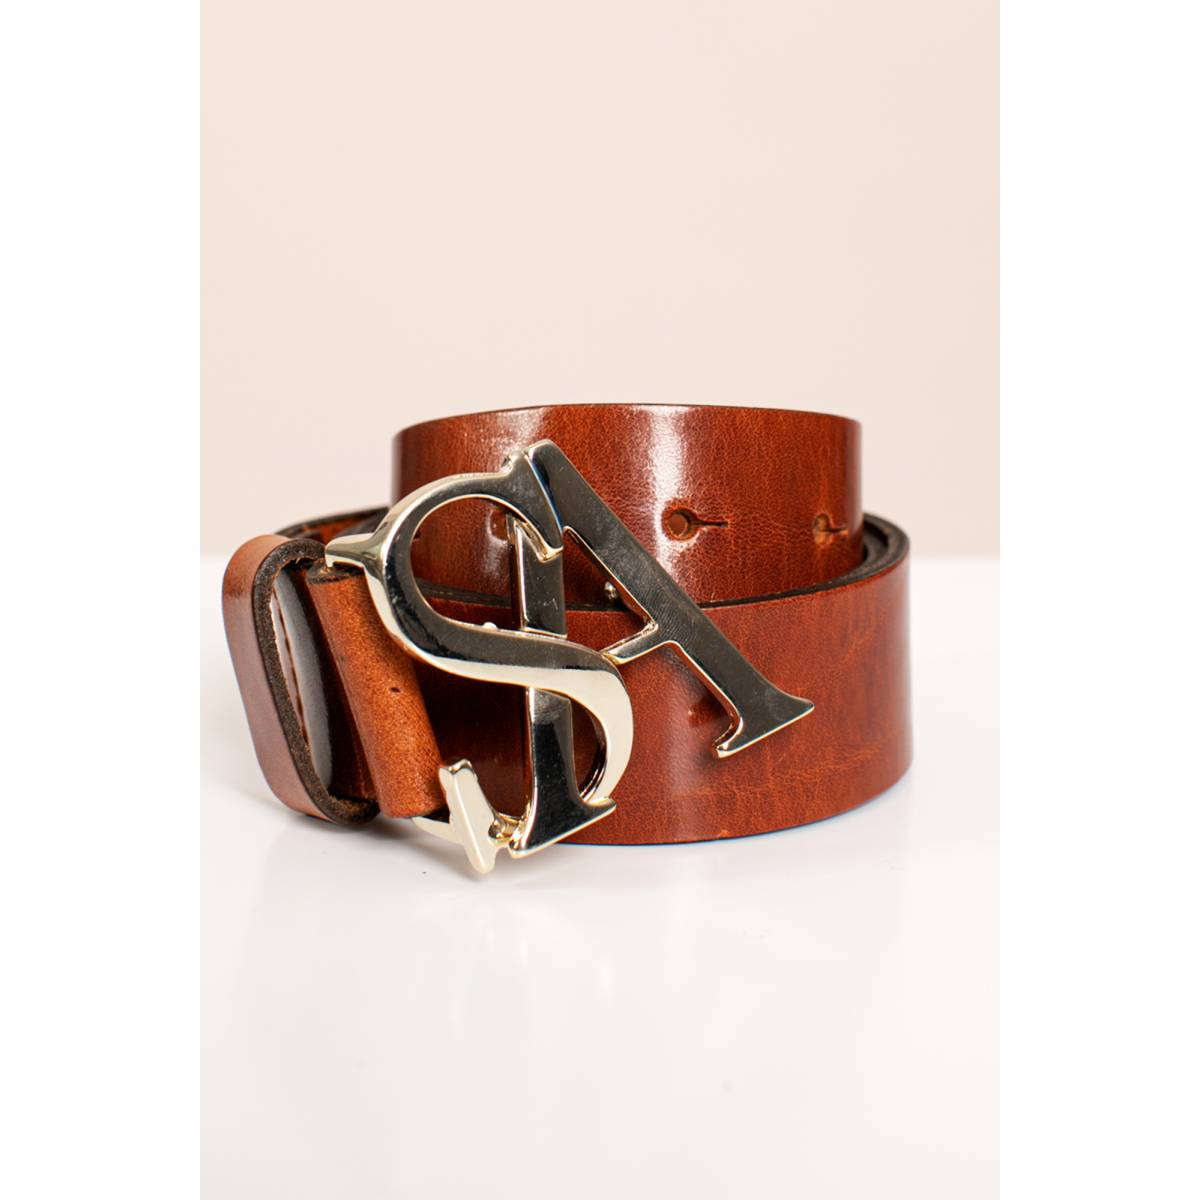 Studio Anneloes SA gold buckle leather belt Bruin